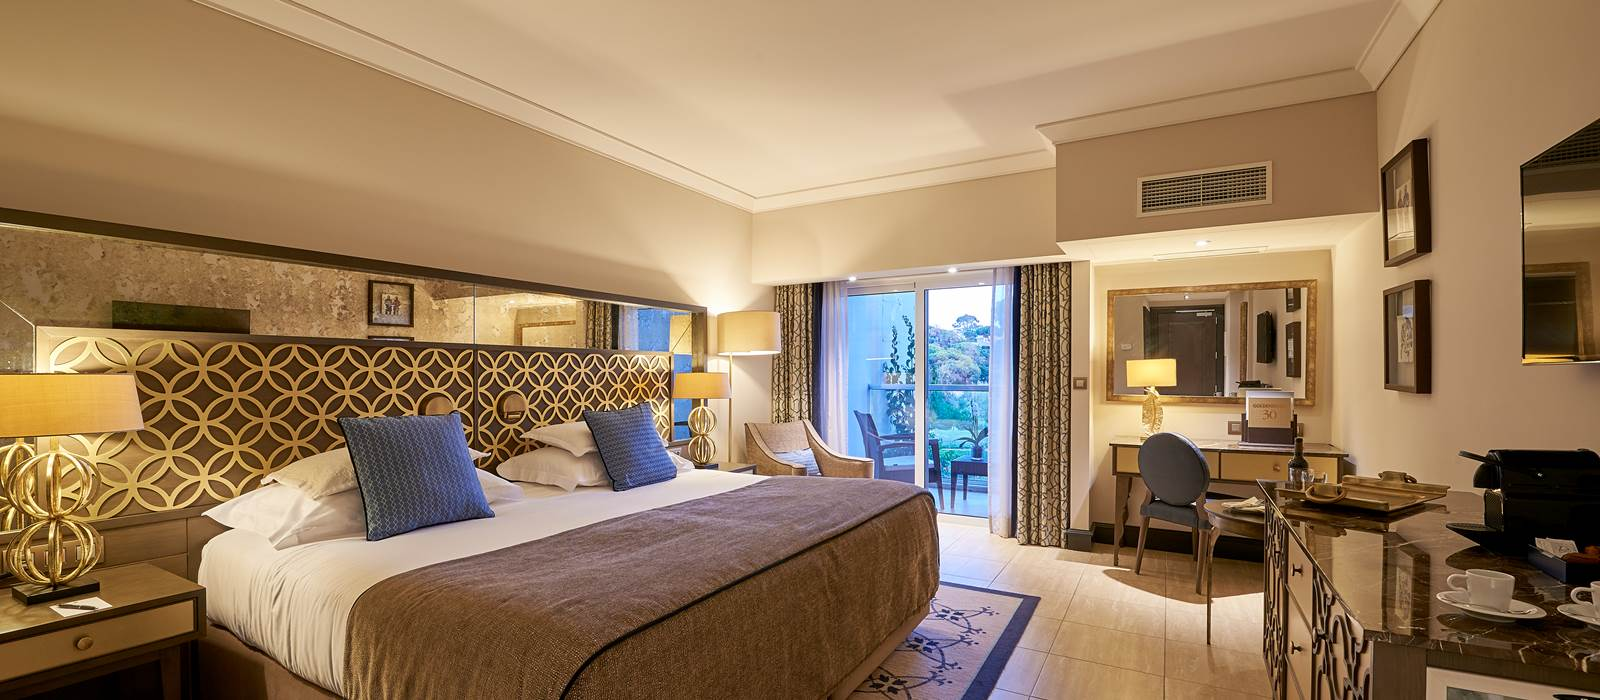 Premium Room at Dona Filipa Hotel